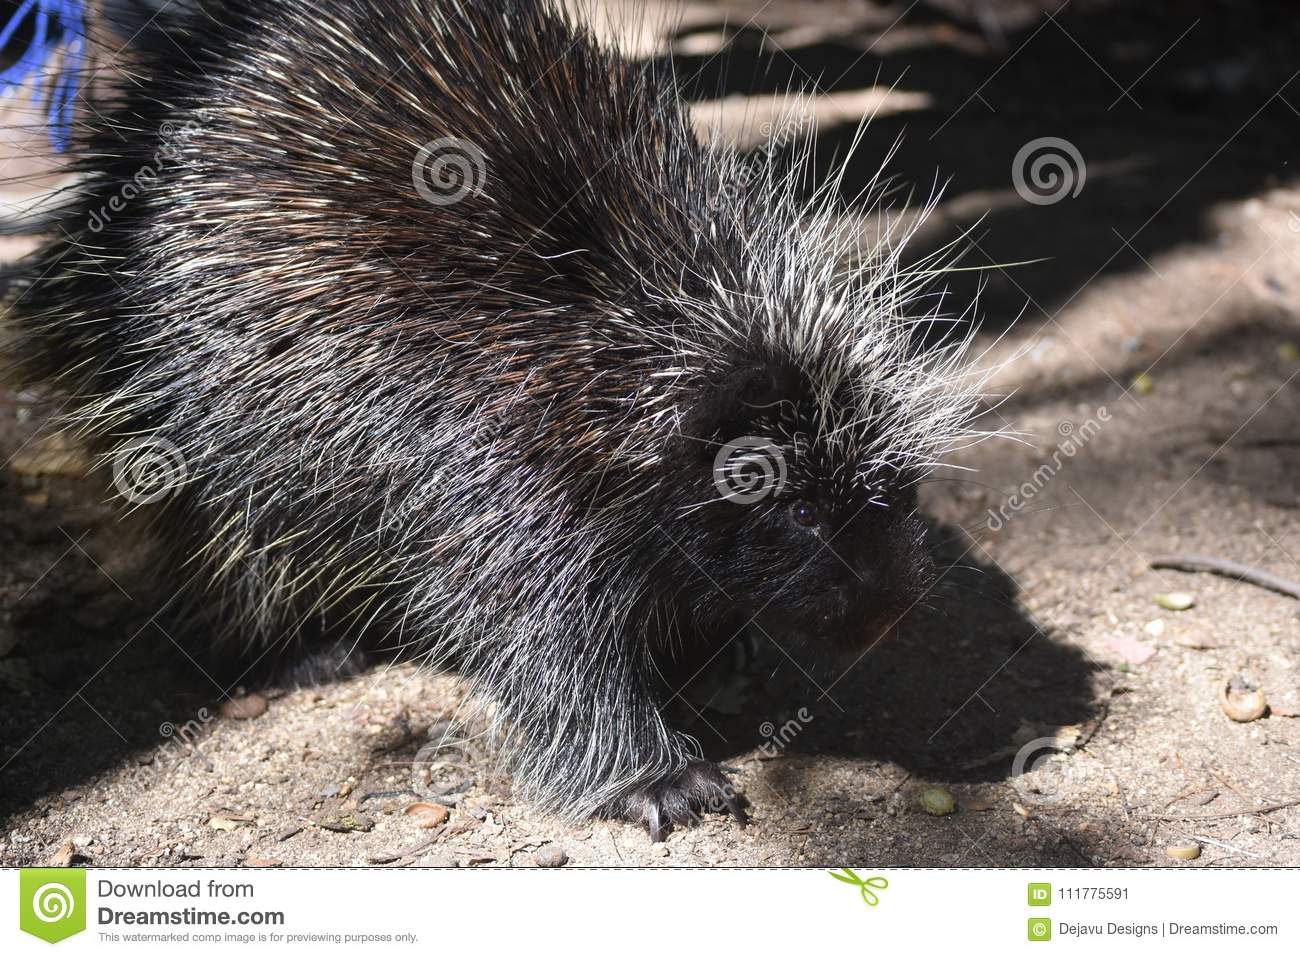 Prickly black porcupine with white tipped quills